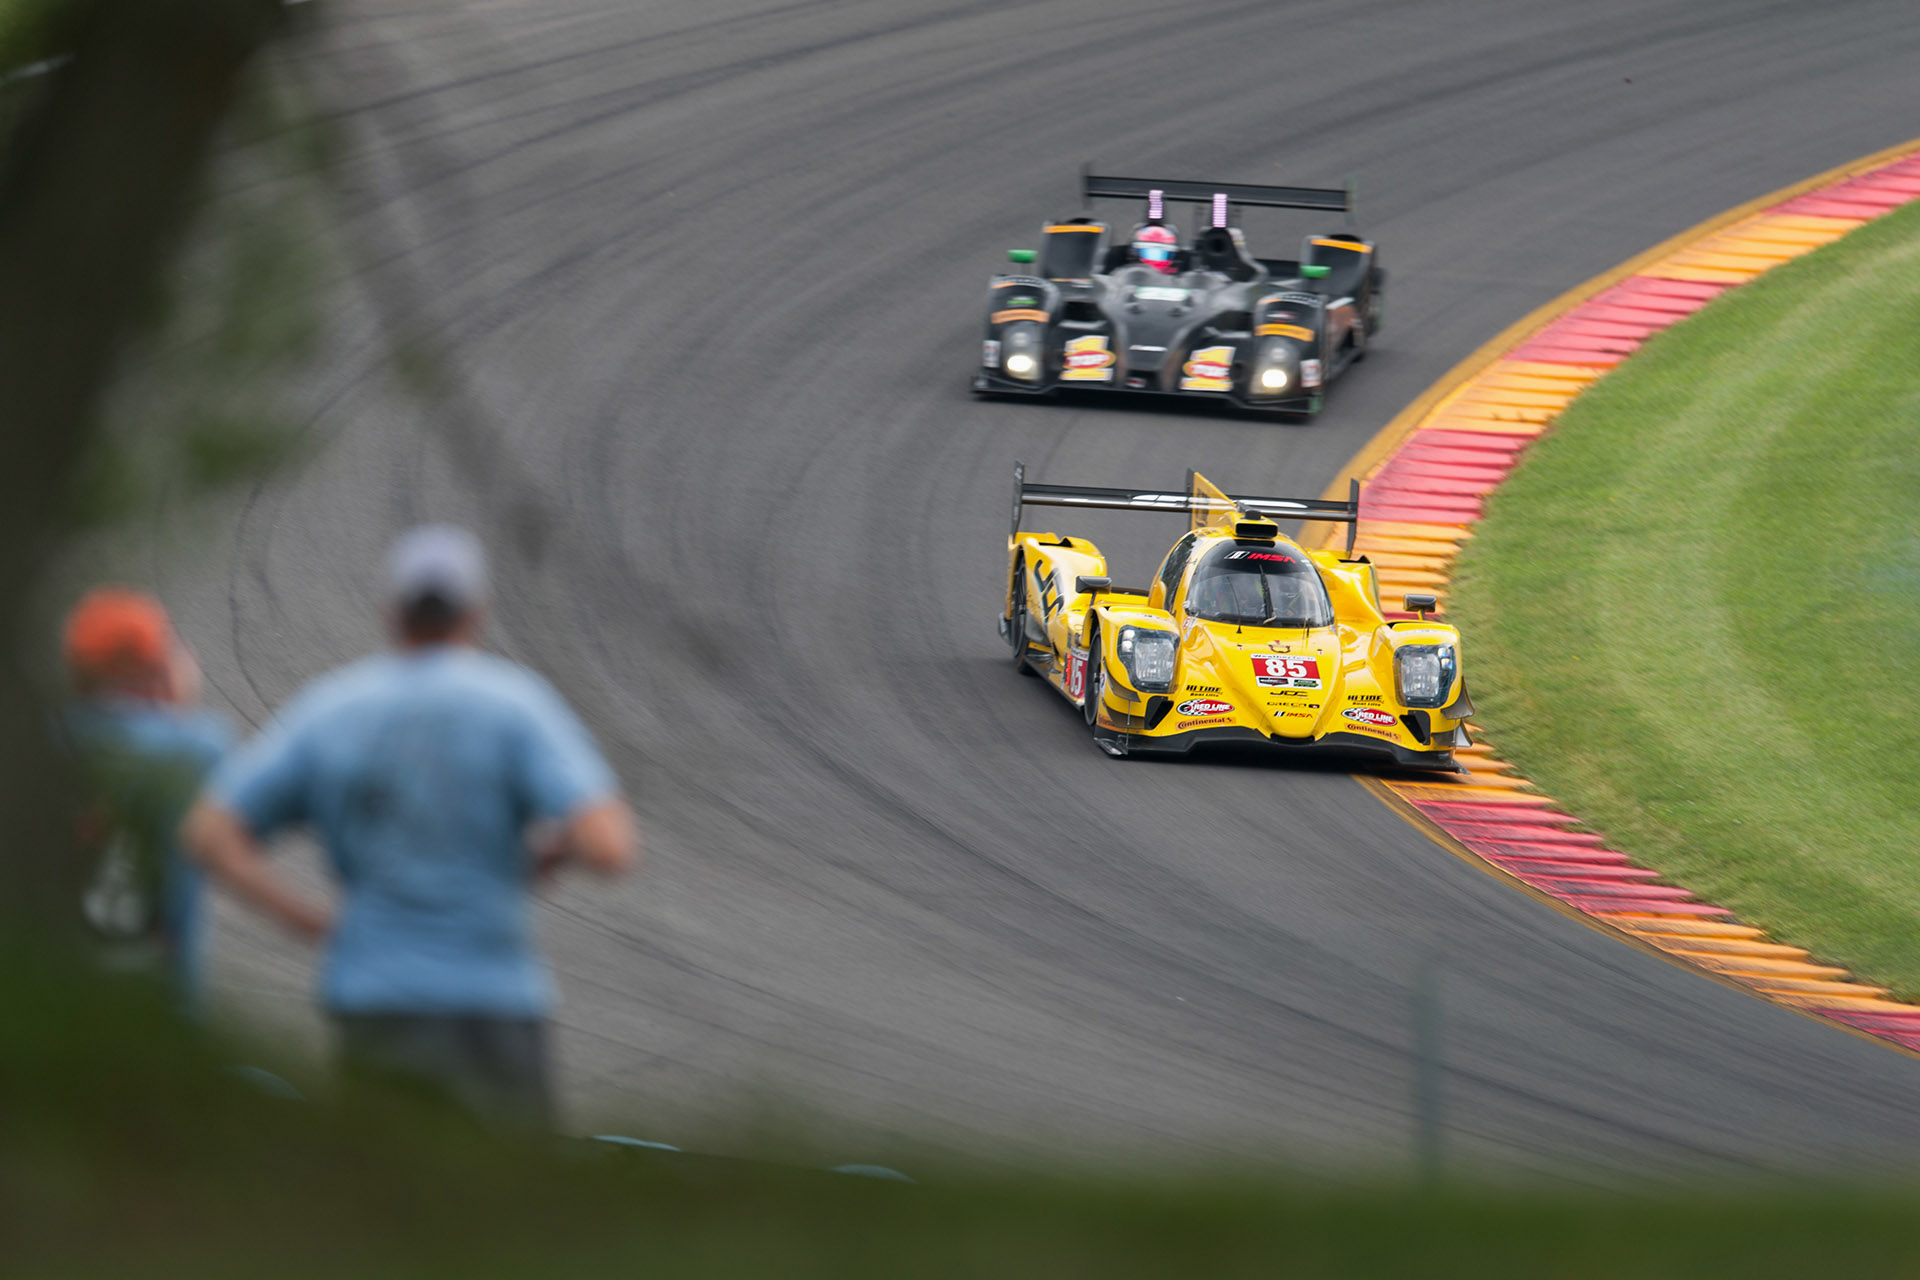 luke Munnell motorsports photography IMSA Watkins Glen 85 JDC Miller Motorsports Oreca prototype racing with spectators in foreground watching